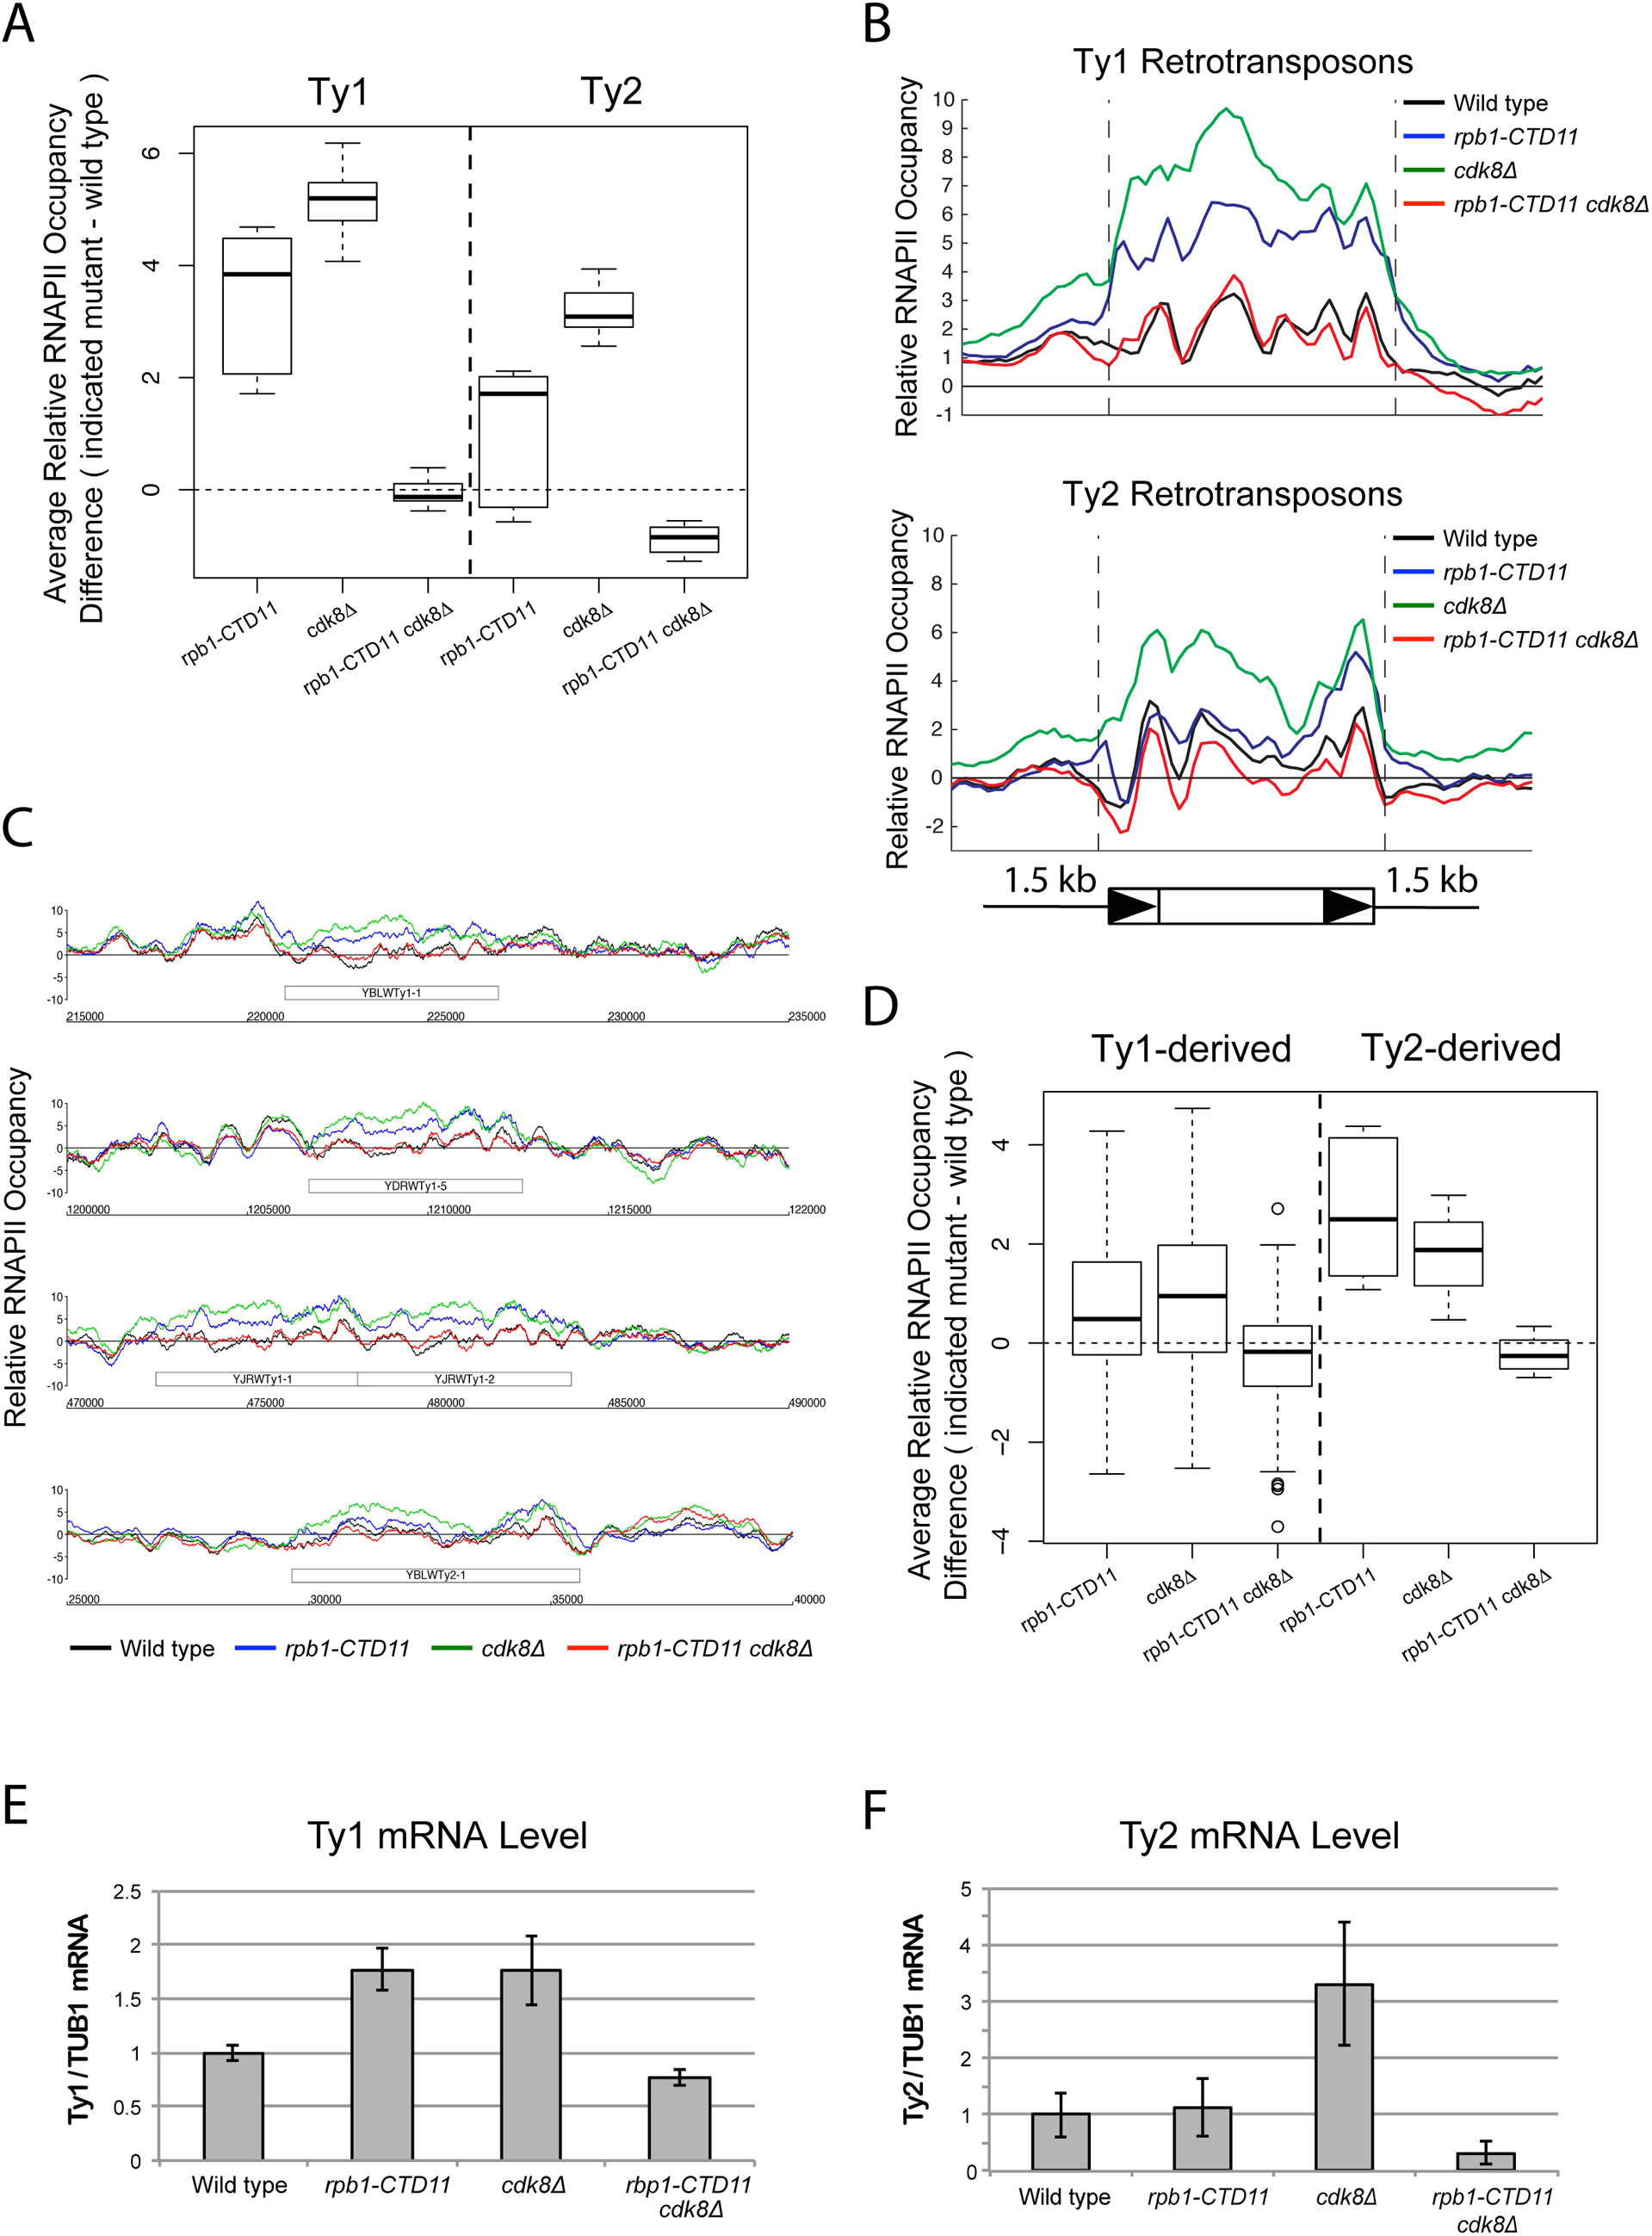 Loss of <i>CDK8</i> normalized the elevated RNAPII and mRNA levels at Ty1 and Ty2 retrotransposons.